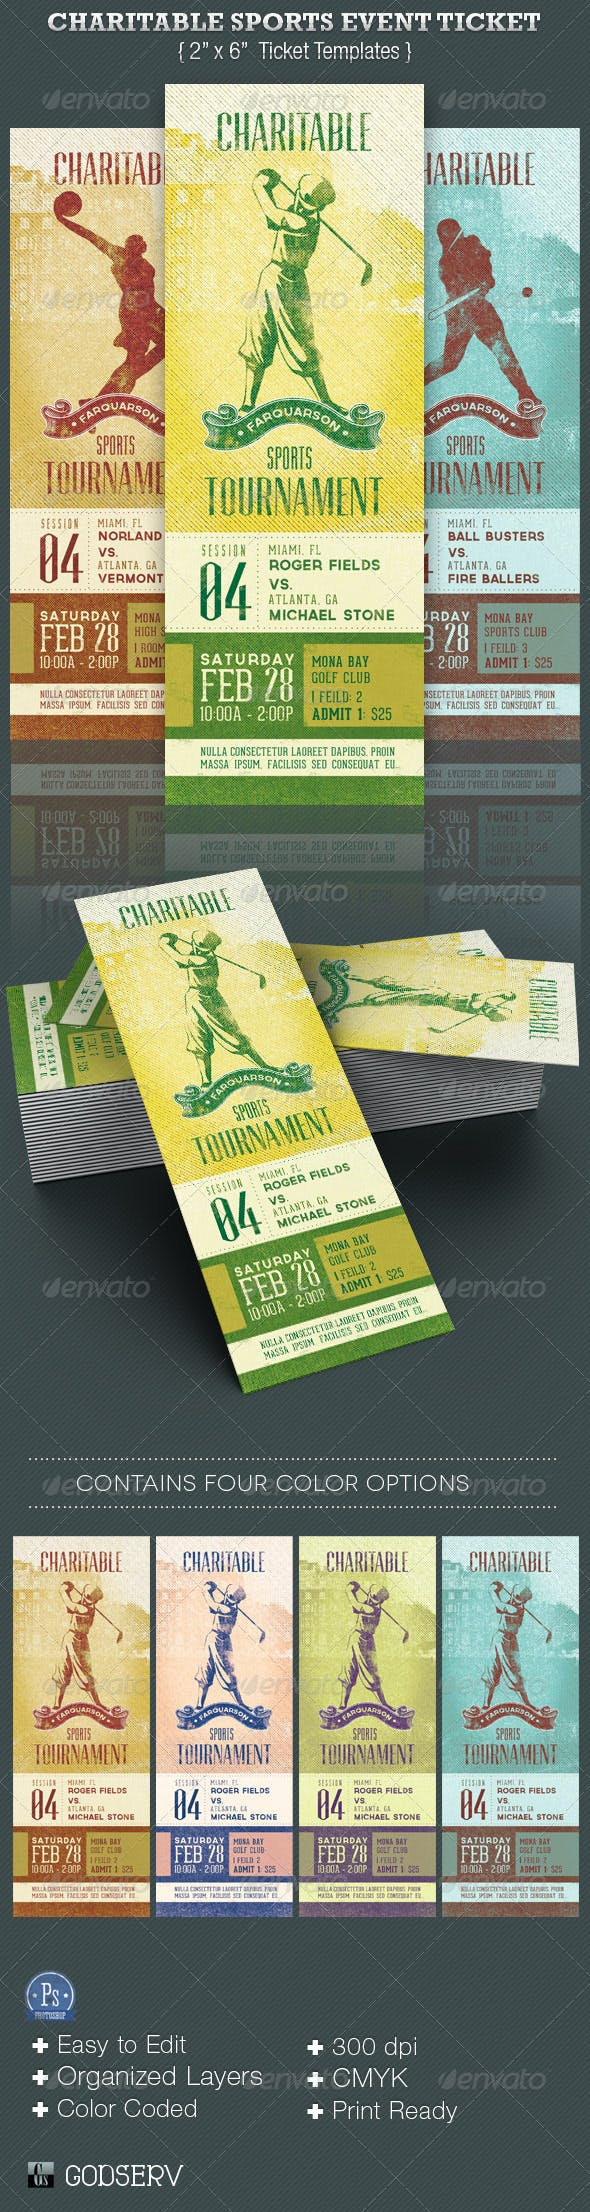 charitable sports event ticket template by godserv graphicriver